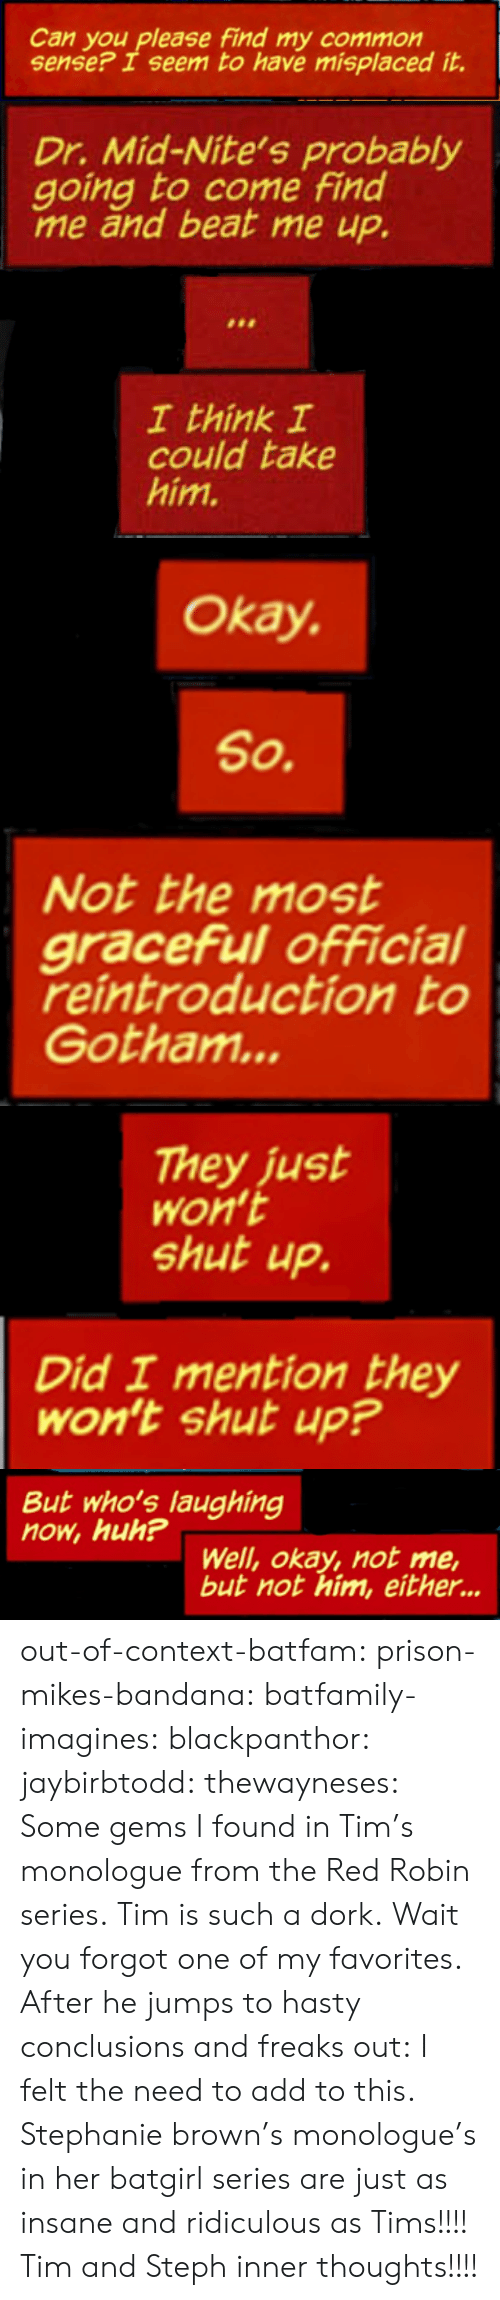 Huh, Shut Up, and Target: Can you please find my common  sense? I seem to have misplaced it.   Dr. Mid-Nite's probably  going to come find  me and beat me up.  I think I  could take  him.   Okay.  So.  Not the most  graceful official  reintroduction to  Gotham...   They just  Won't  shut up.  Did I mention they  Won't shut up?   But who's laughing  now, huh?  Well, okay, not me,  but not him, either... out-of-context-batfam: prison-mikes-bandana:   batfamily-imagines:  blackpanthor:  jaybirbtodd:  thewayneses:  Some gems I found in Tim's monologue from theRed Robin series. Tim is such a dork.  Wait you forgot one of my favorites. After he jumps to hasty conclusions and freaks out:    I felt the need to add to this.   Stephanie brown's monologue's in her batgirl series are just as insane and ridiculous as Tims!!!!     Tim and Steph inner thoughts!!!!